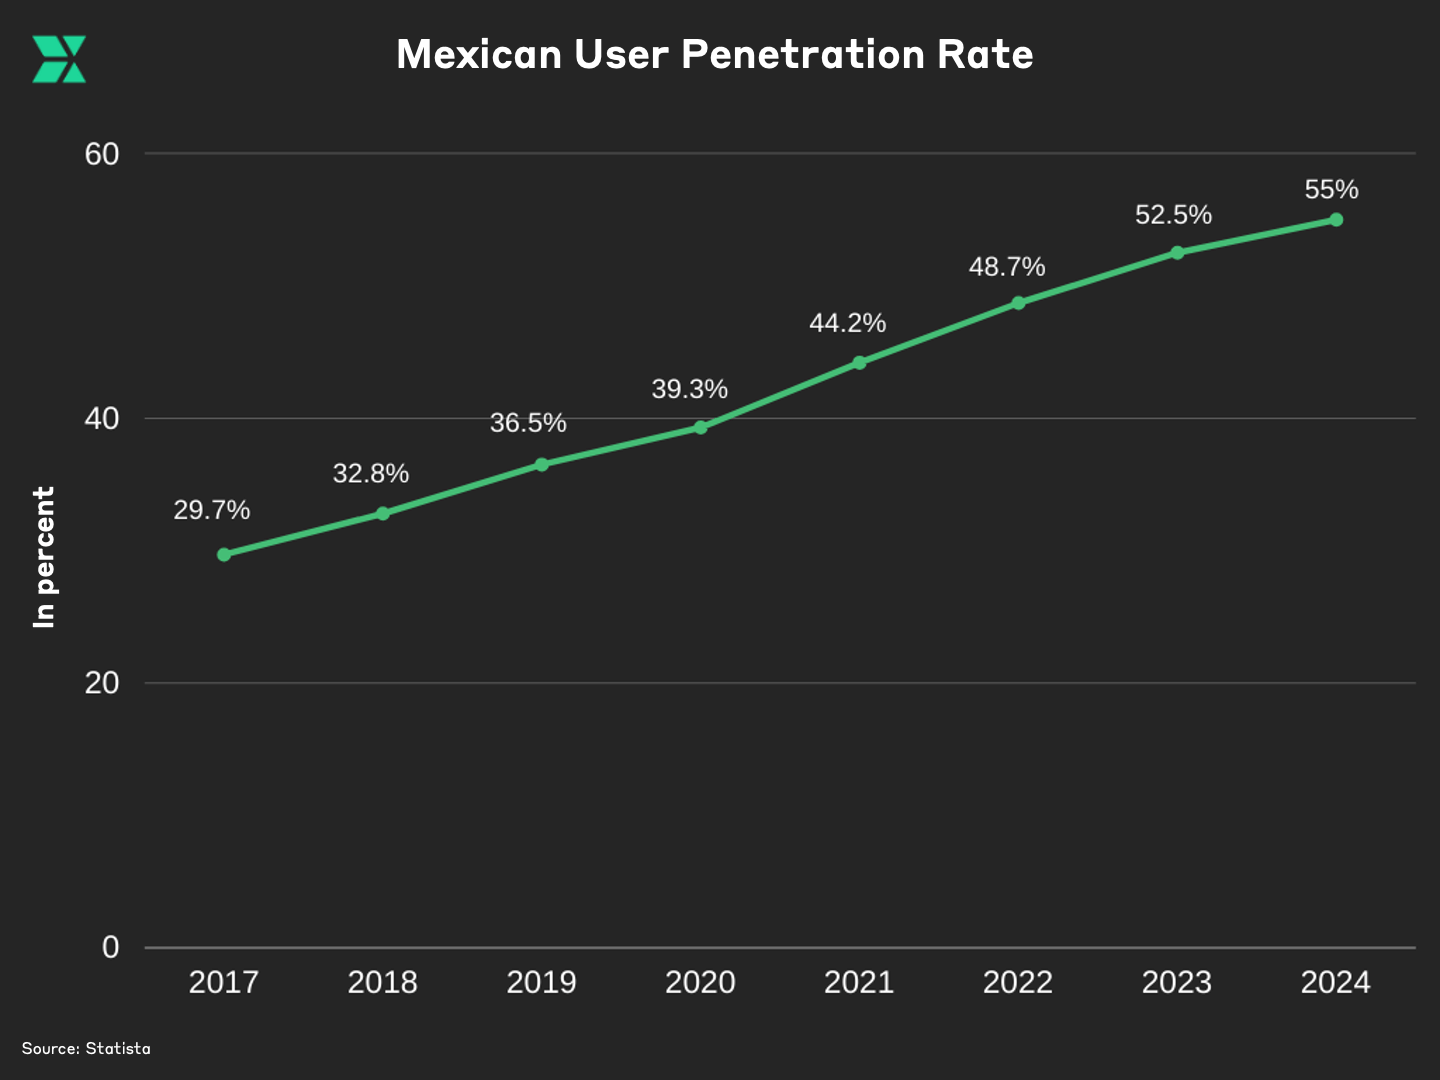 Mexican User Penetration Rate